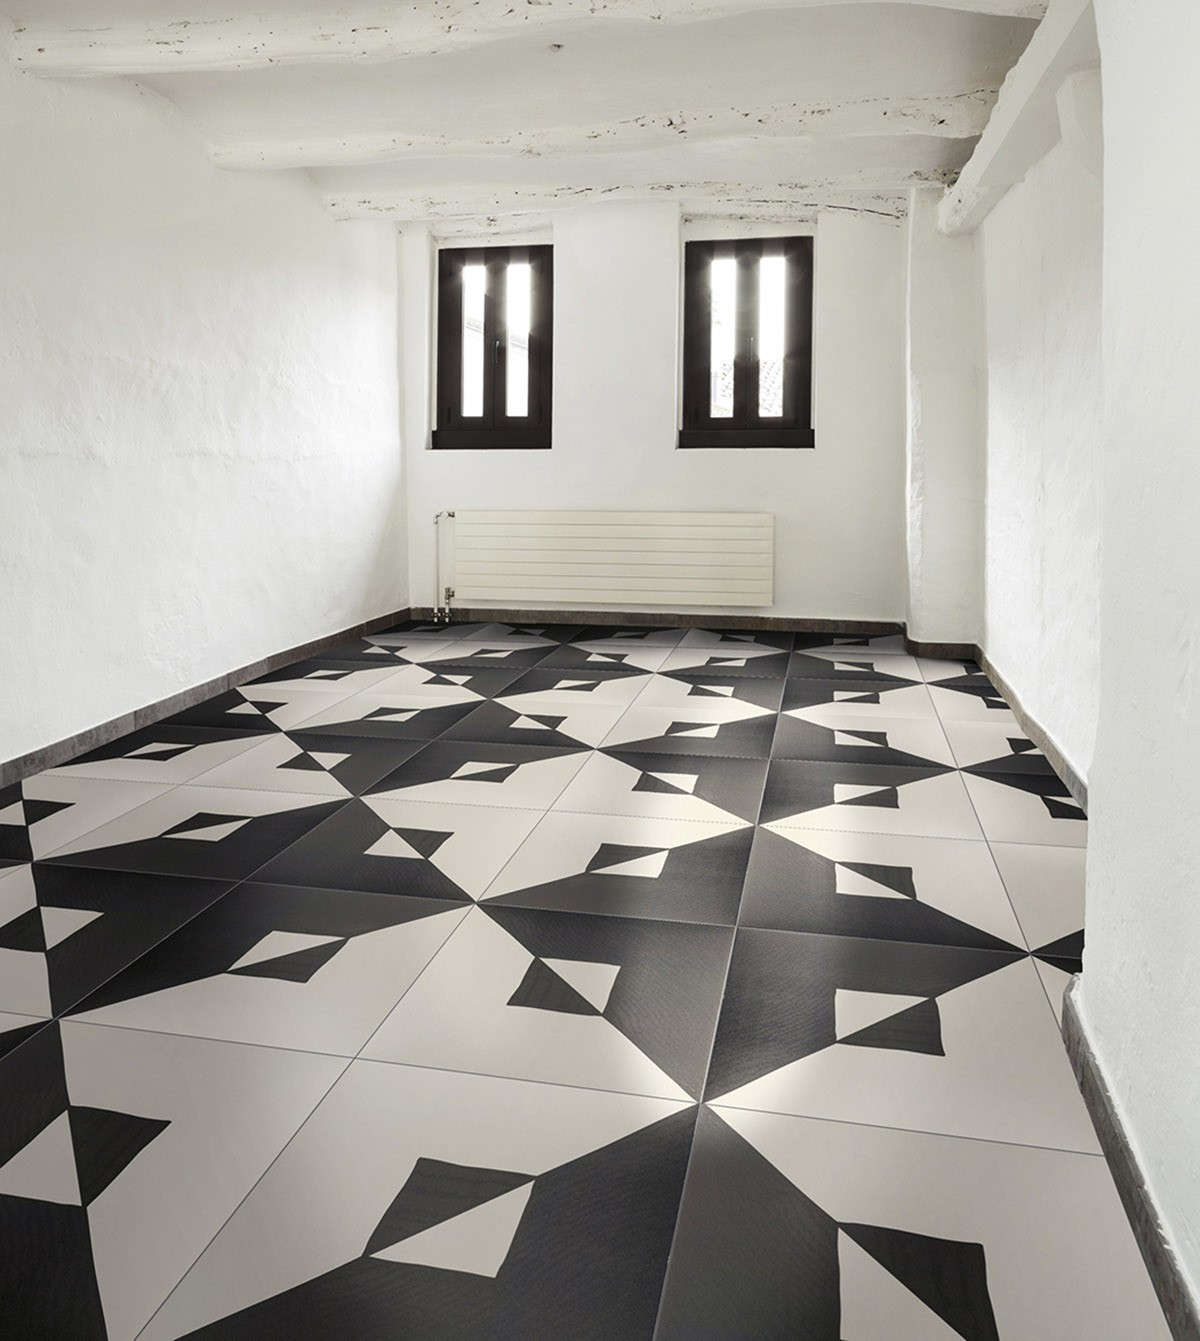 Carrelage aspect carreau ciment noir et blanc tangle bianco e nero porto ve - Carrelage ciment noir et blanc ...